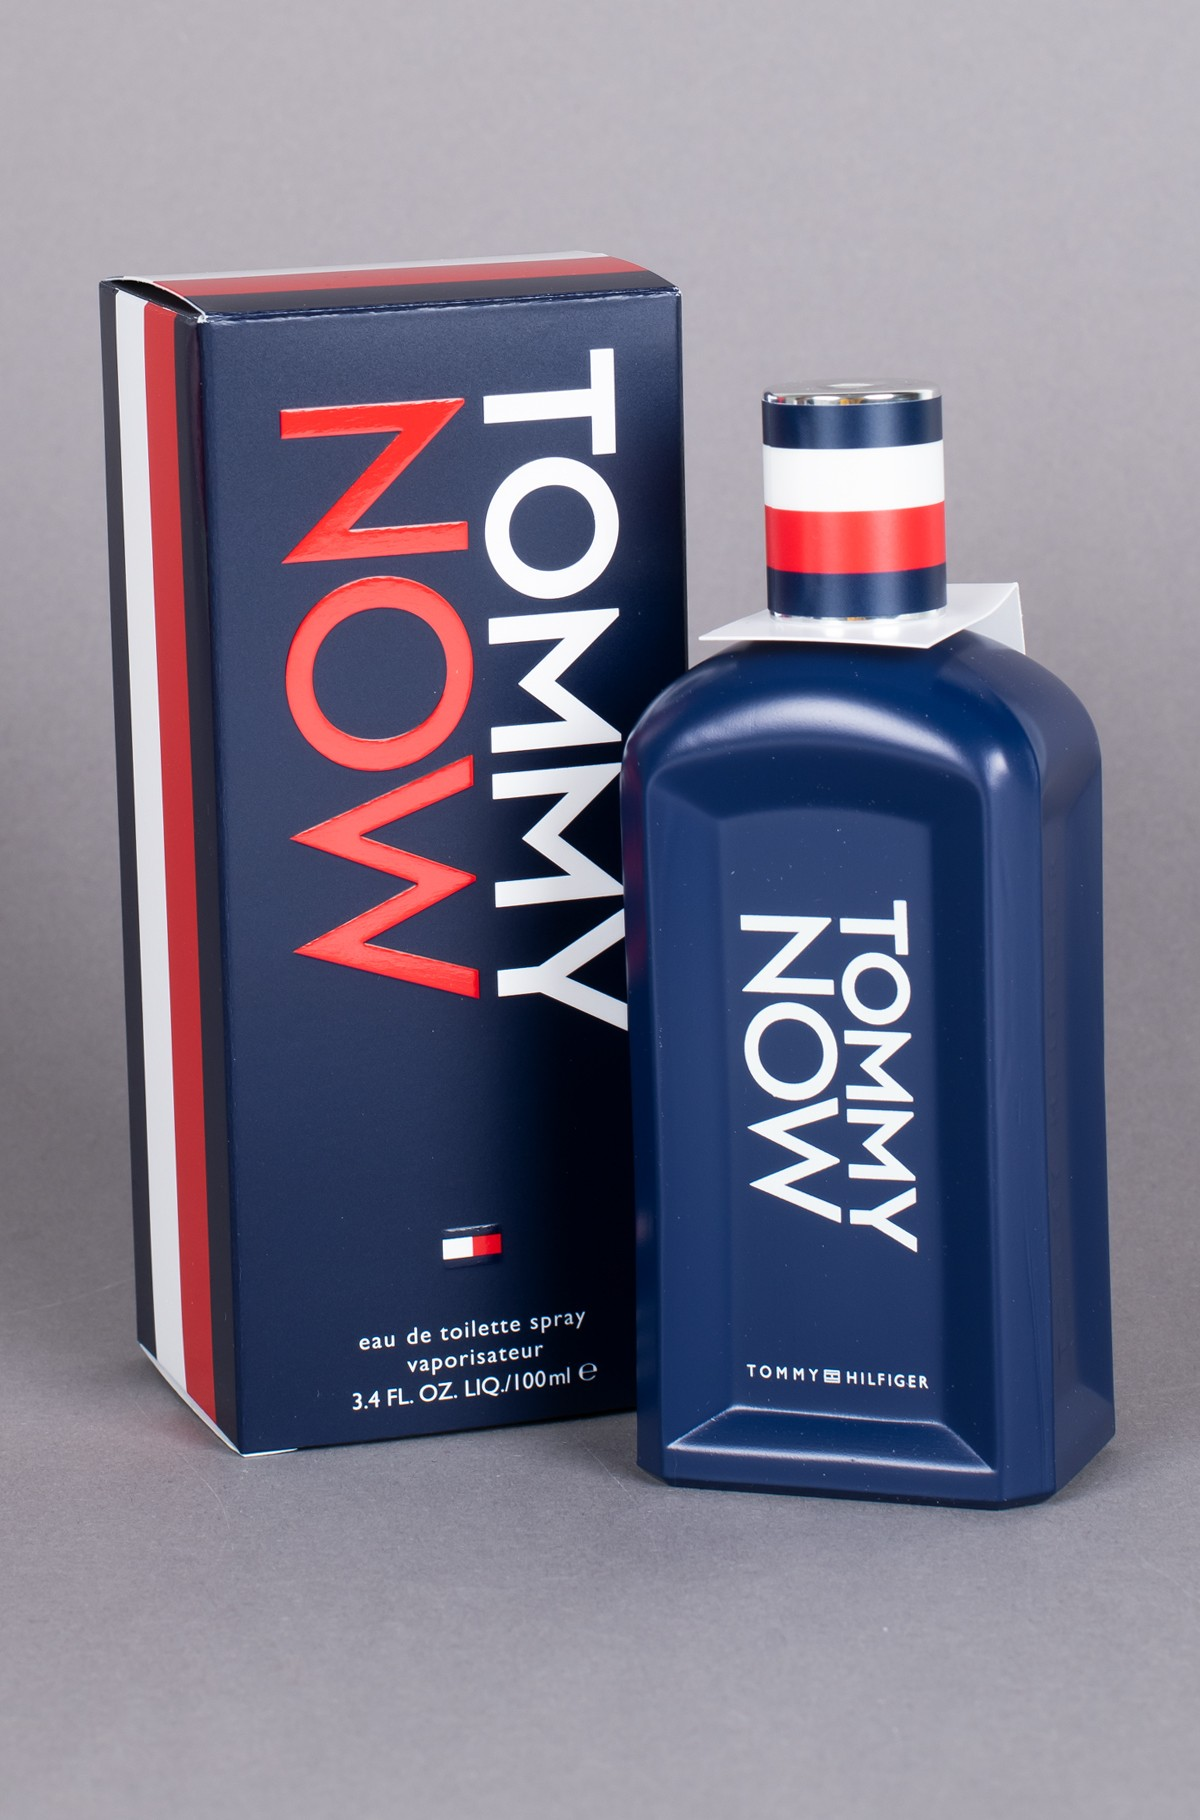 Tualetinis vanduo TH Tommy Now EDT 100ml-full-1